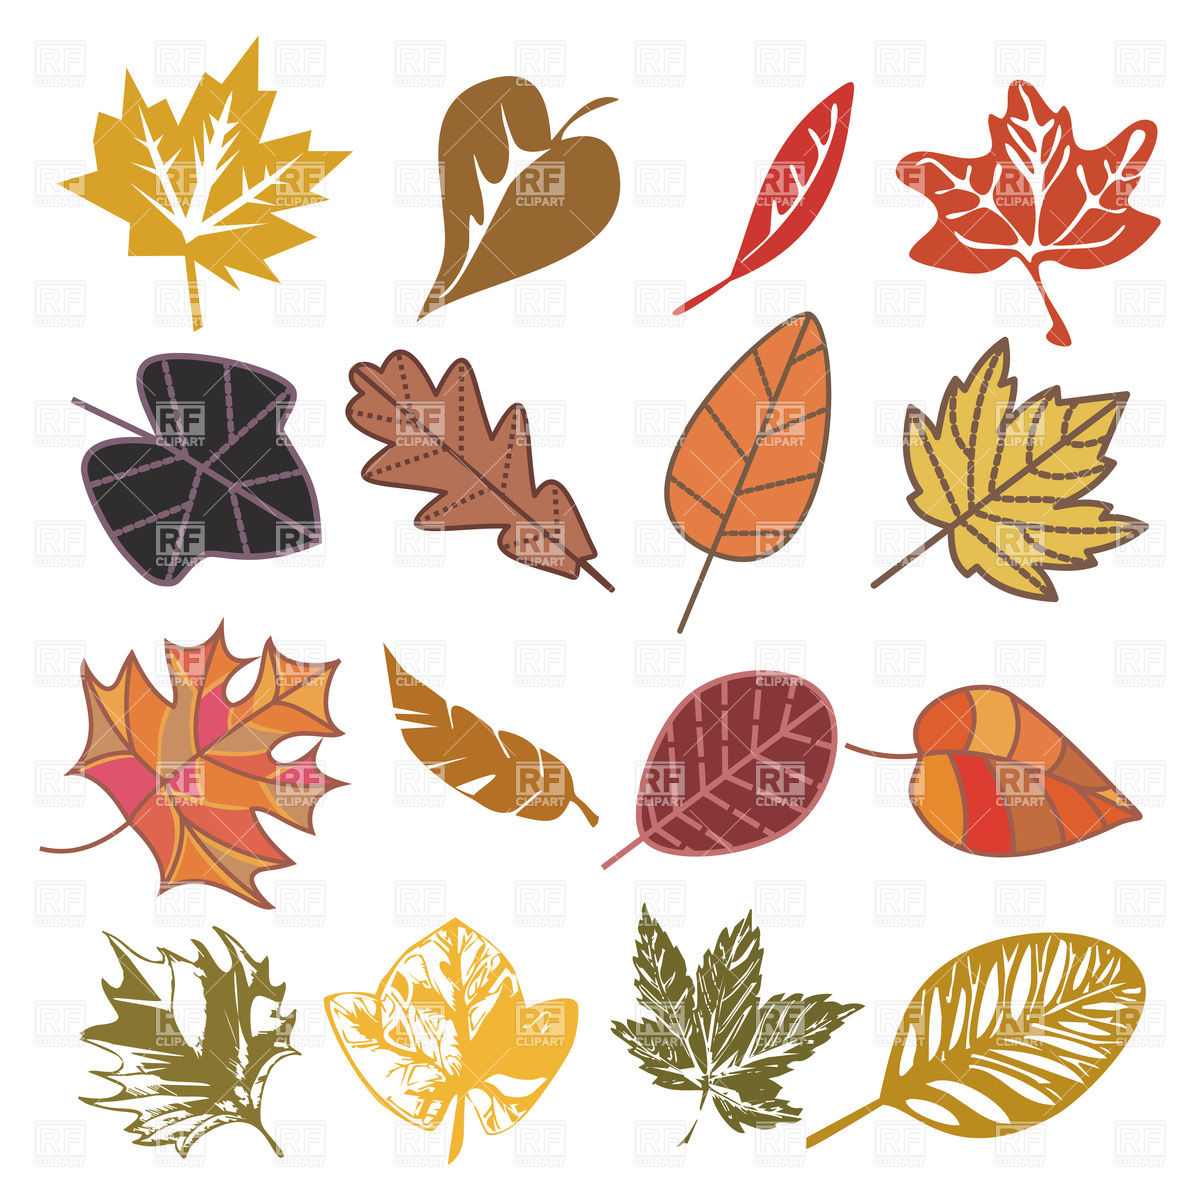 Dry autumn leaves isolated on white Vector Image #20370.